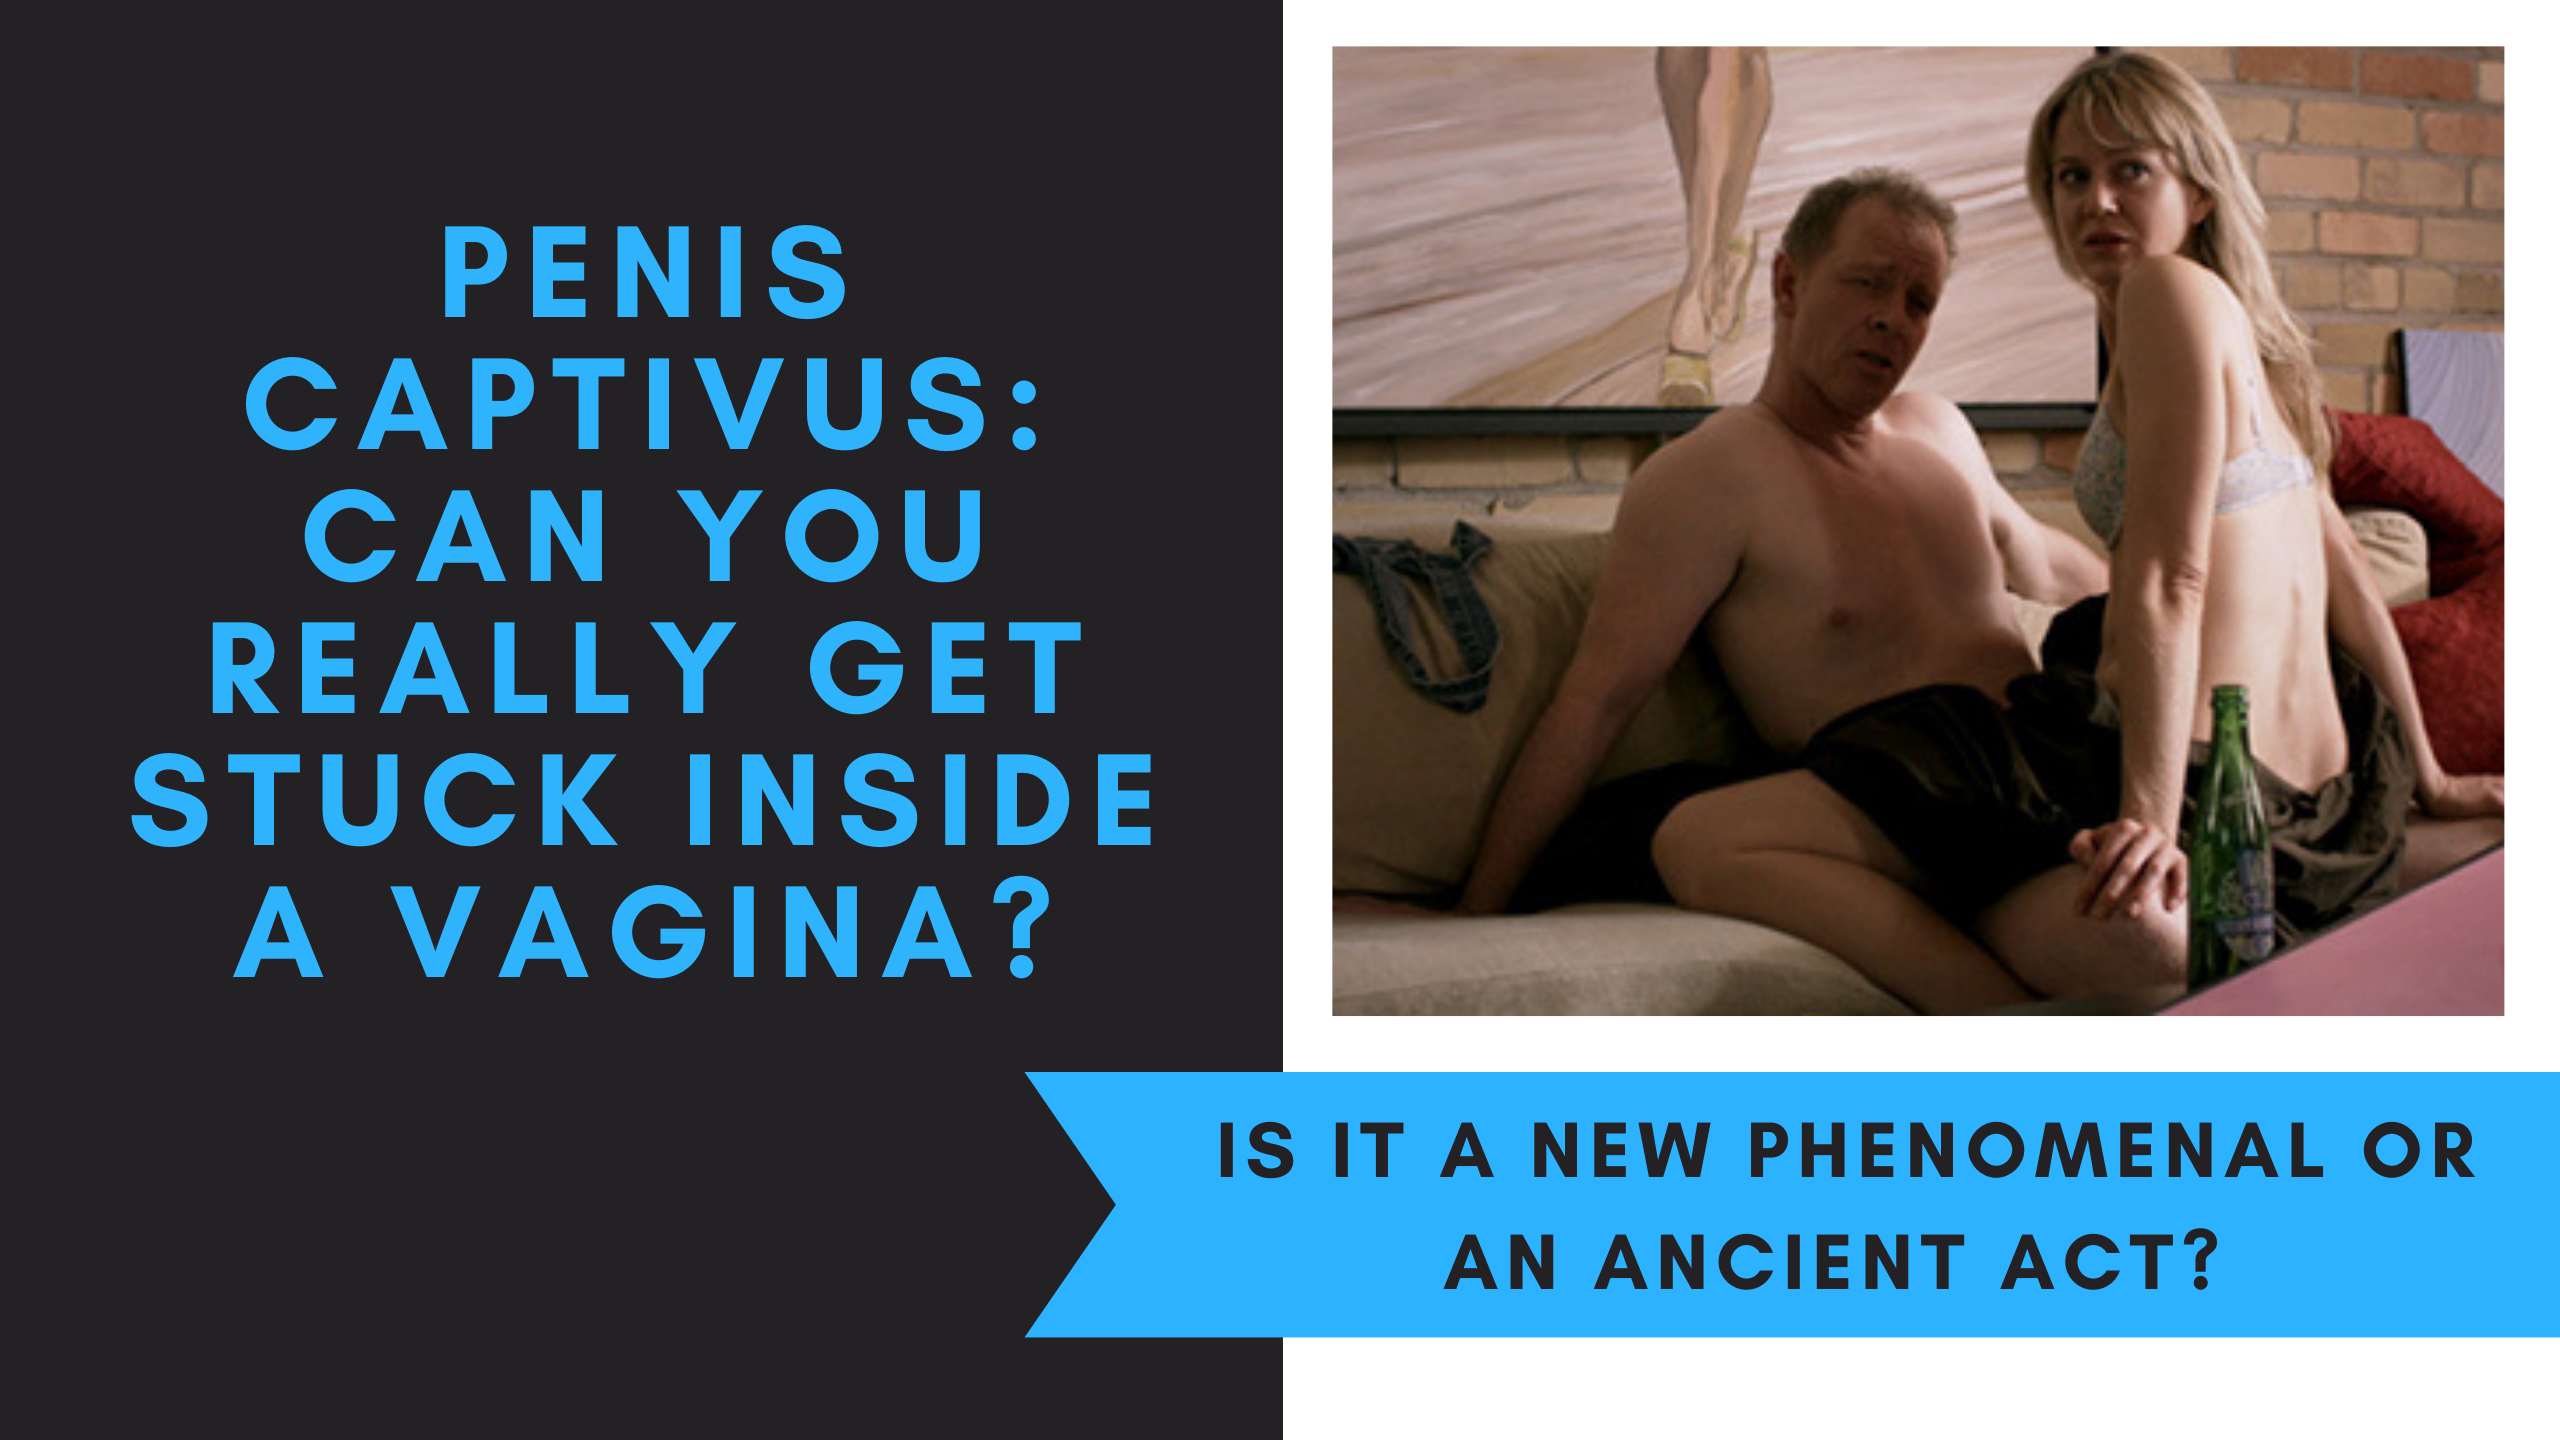 Penis Captivus: Can You Really Get Stuck Inside a Vagina?